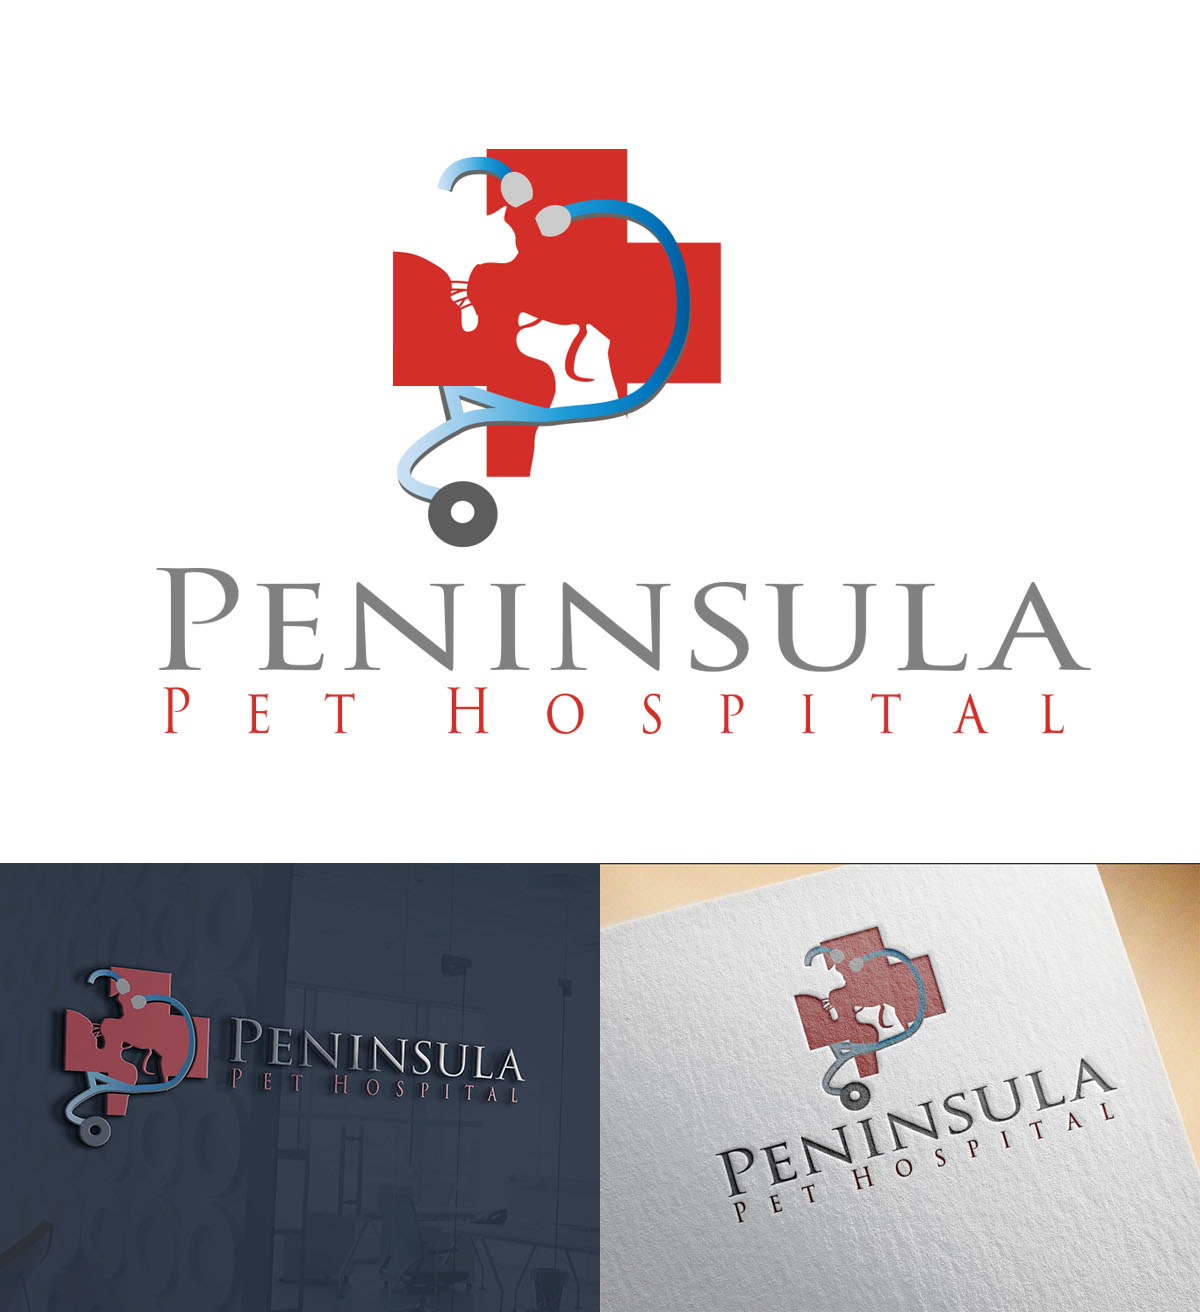 Logo Design by Wilfred Ponseca - Entry No. 175 in the Logo Design Contest Creative Logo Design for Peninsula Pet Hospital.